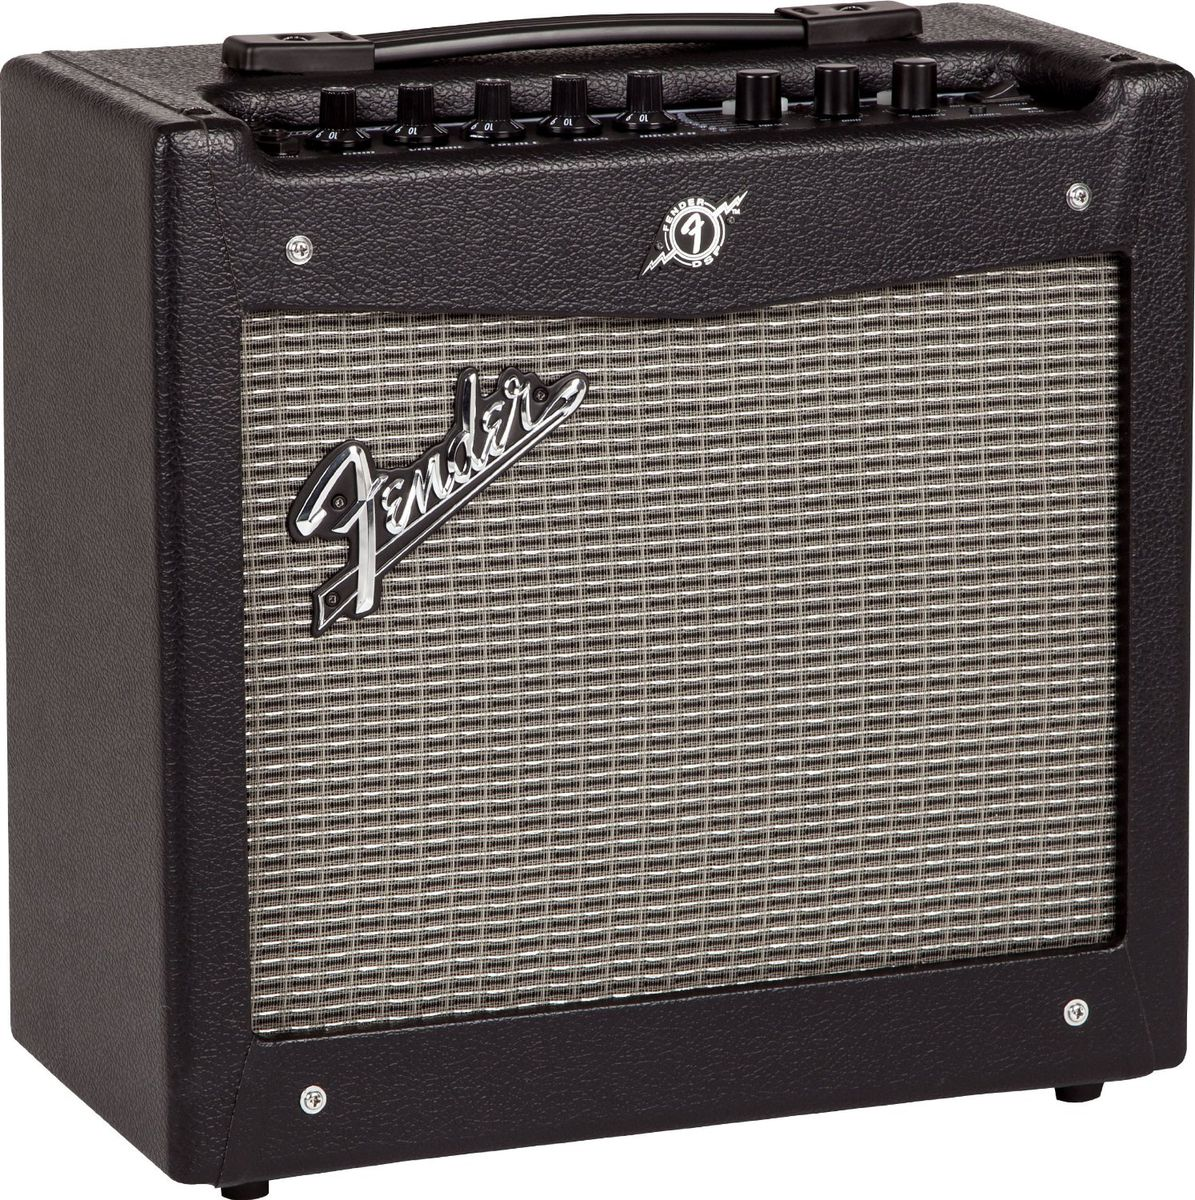 fender mustang i v2 20 watt electric guitar amplifier buy online in south africa. Black Bedroom Furniture Sets. Home Design Ideas